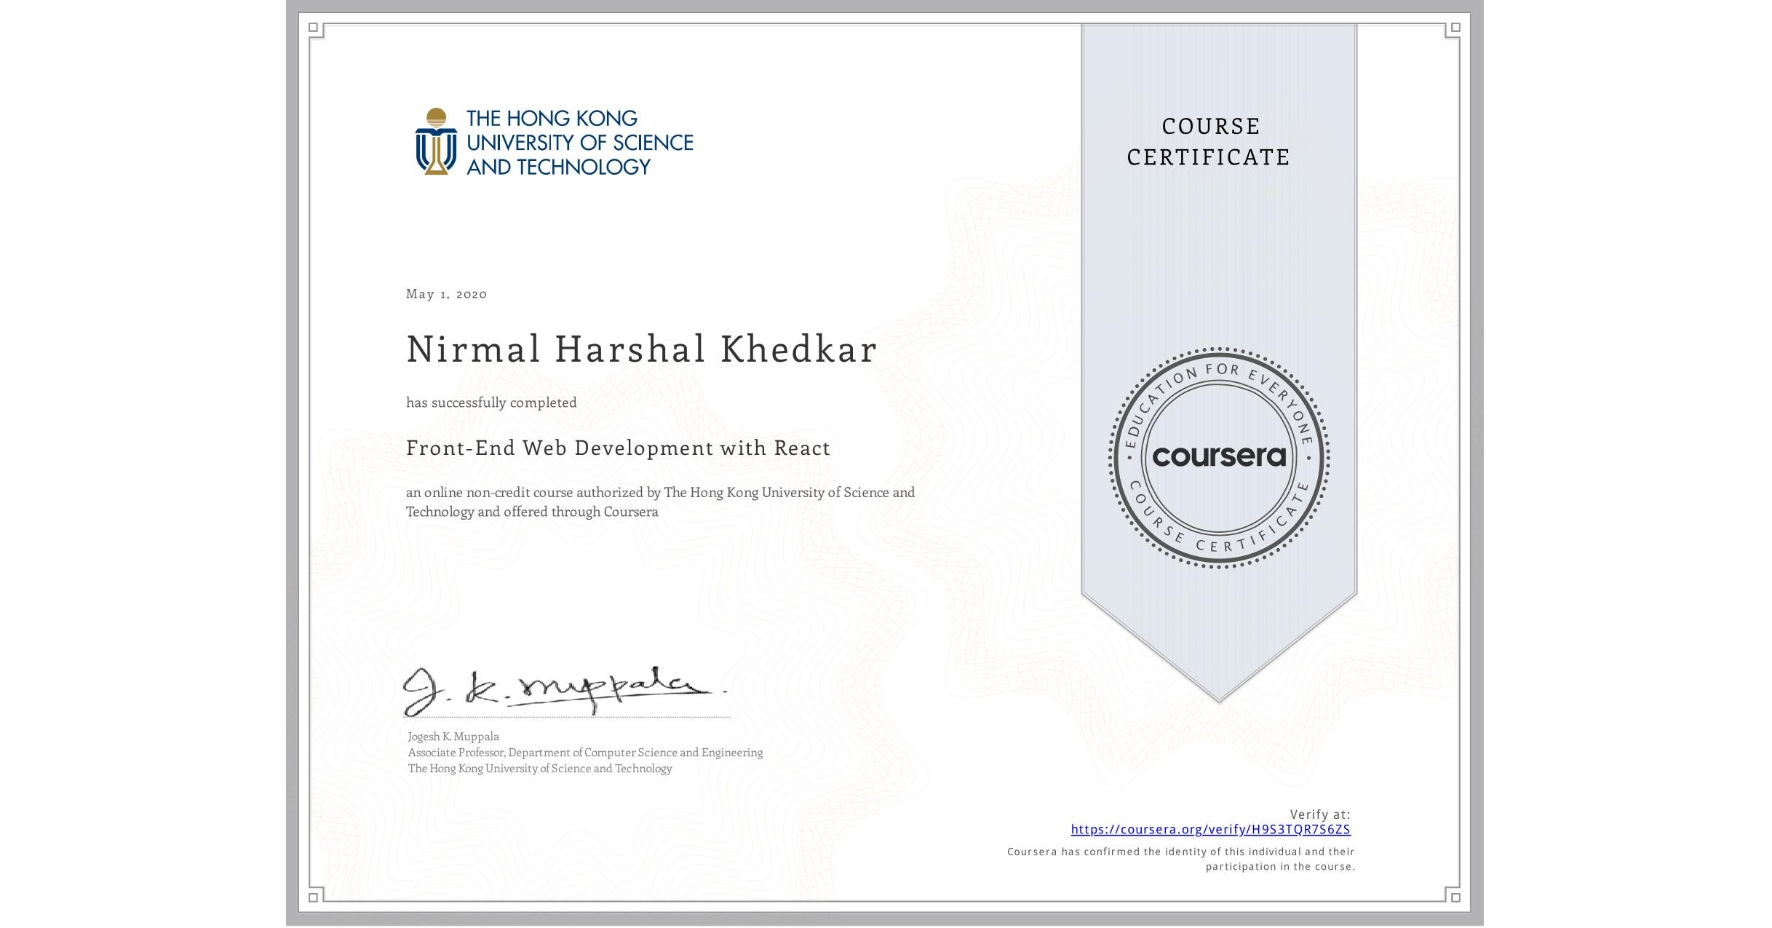 View certificate for Nirmal Harshal Khedkar, Front-End Web Development with React, an online non-credit course authorized by The Hong Kong University of Science and Technology and offered through Coursera